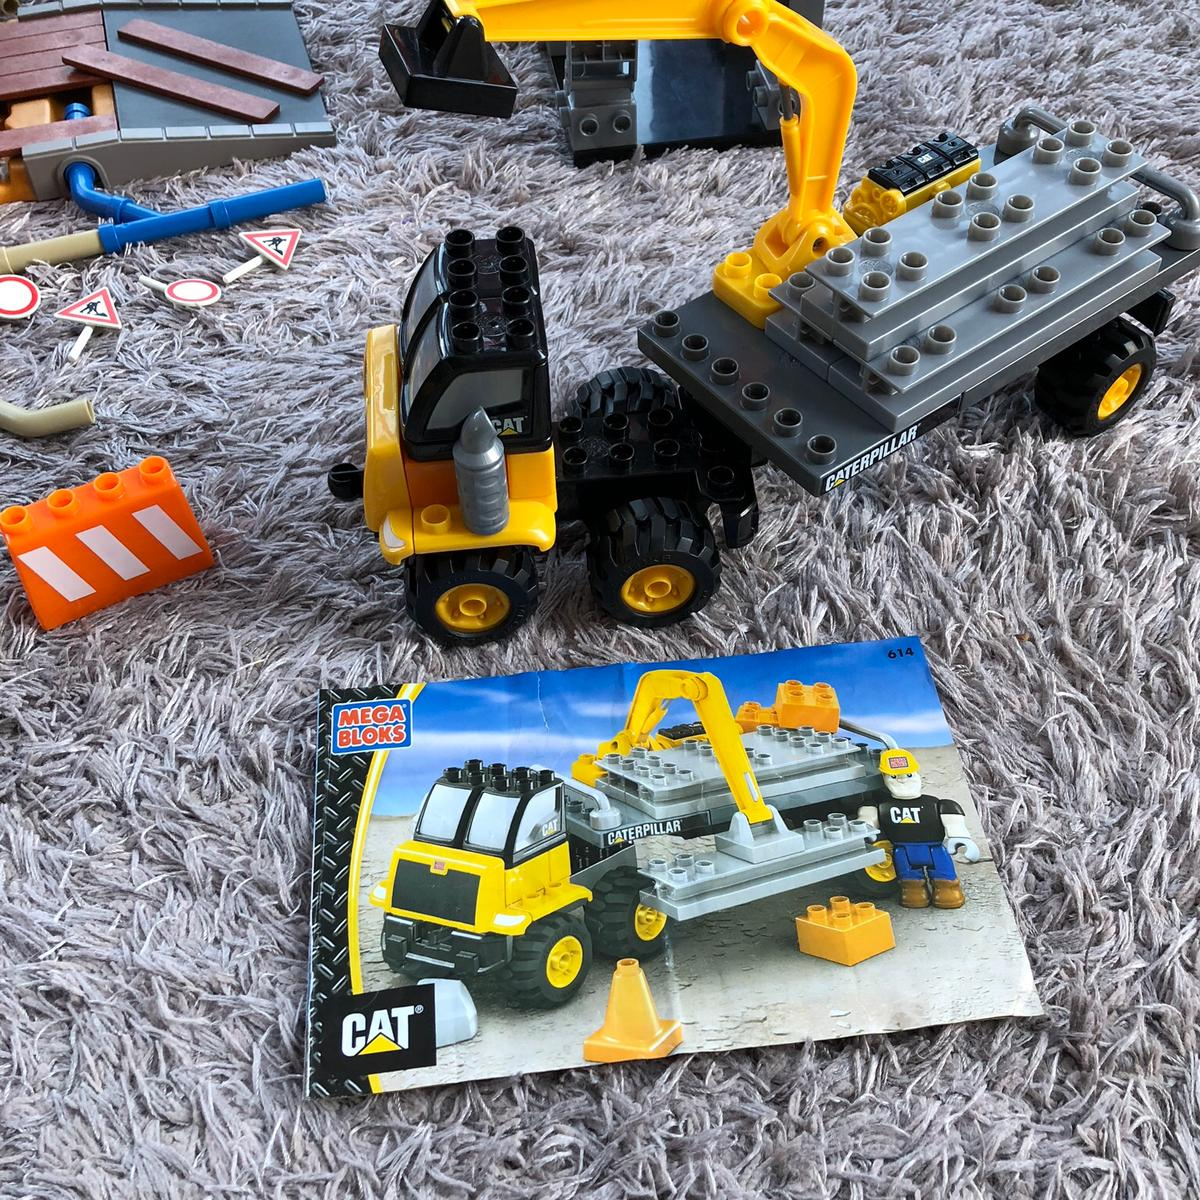 Mega Bloks And Playmobil Construction Sets In Wigan For 1000 For